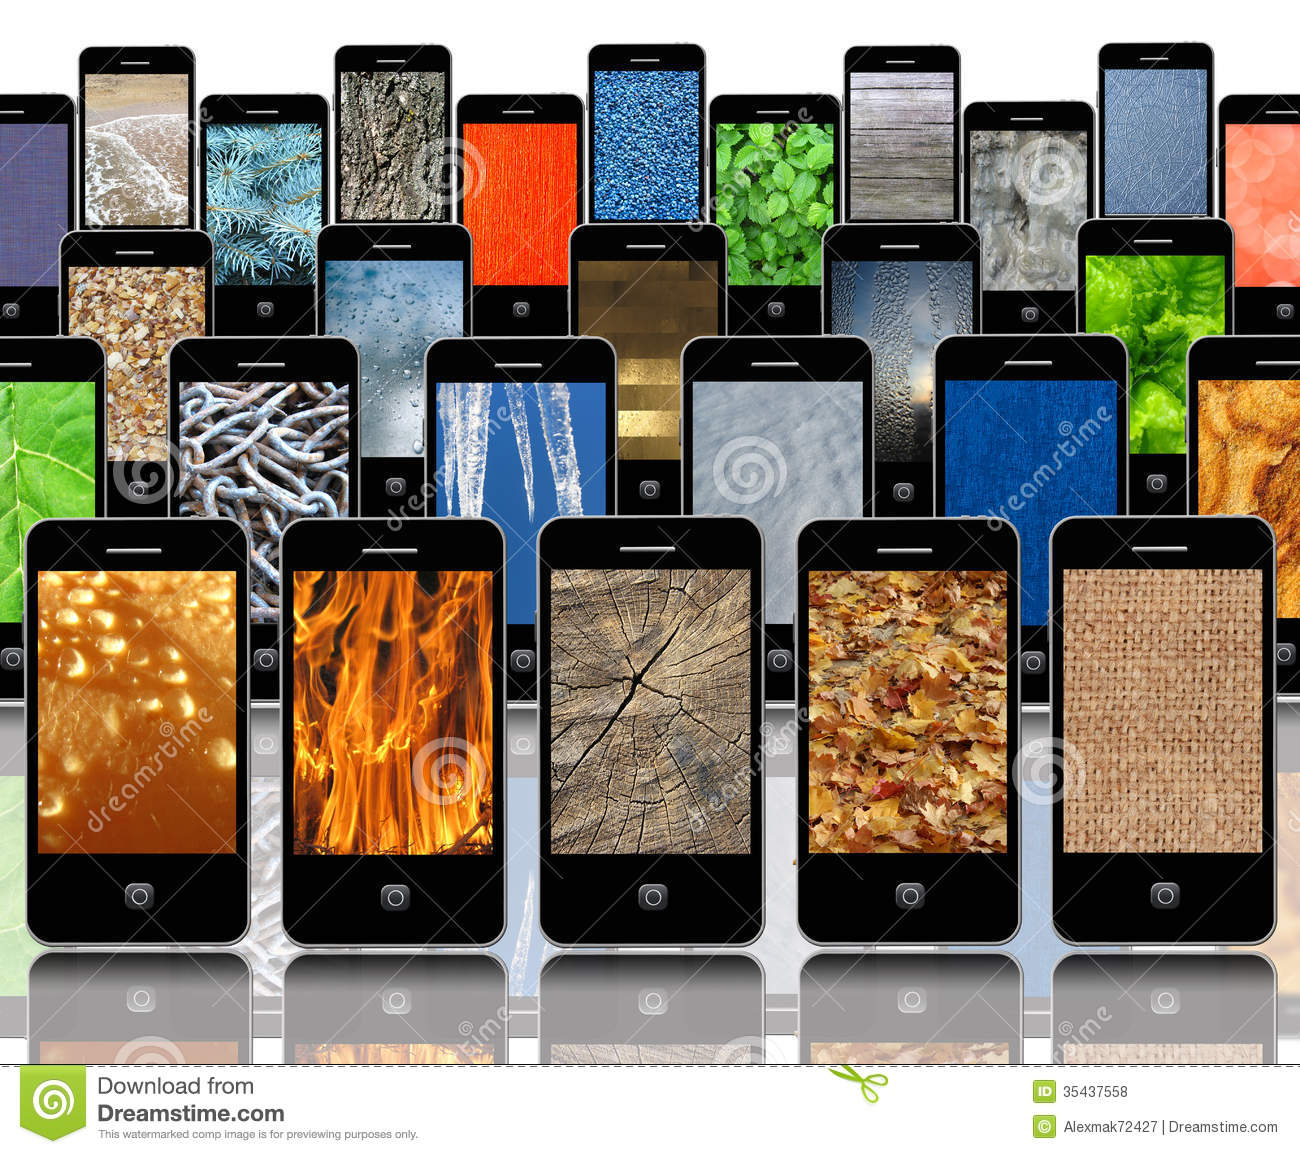 The advantages and disadvantages of Android mobile phones